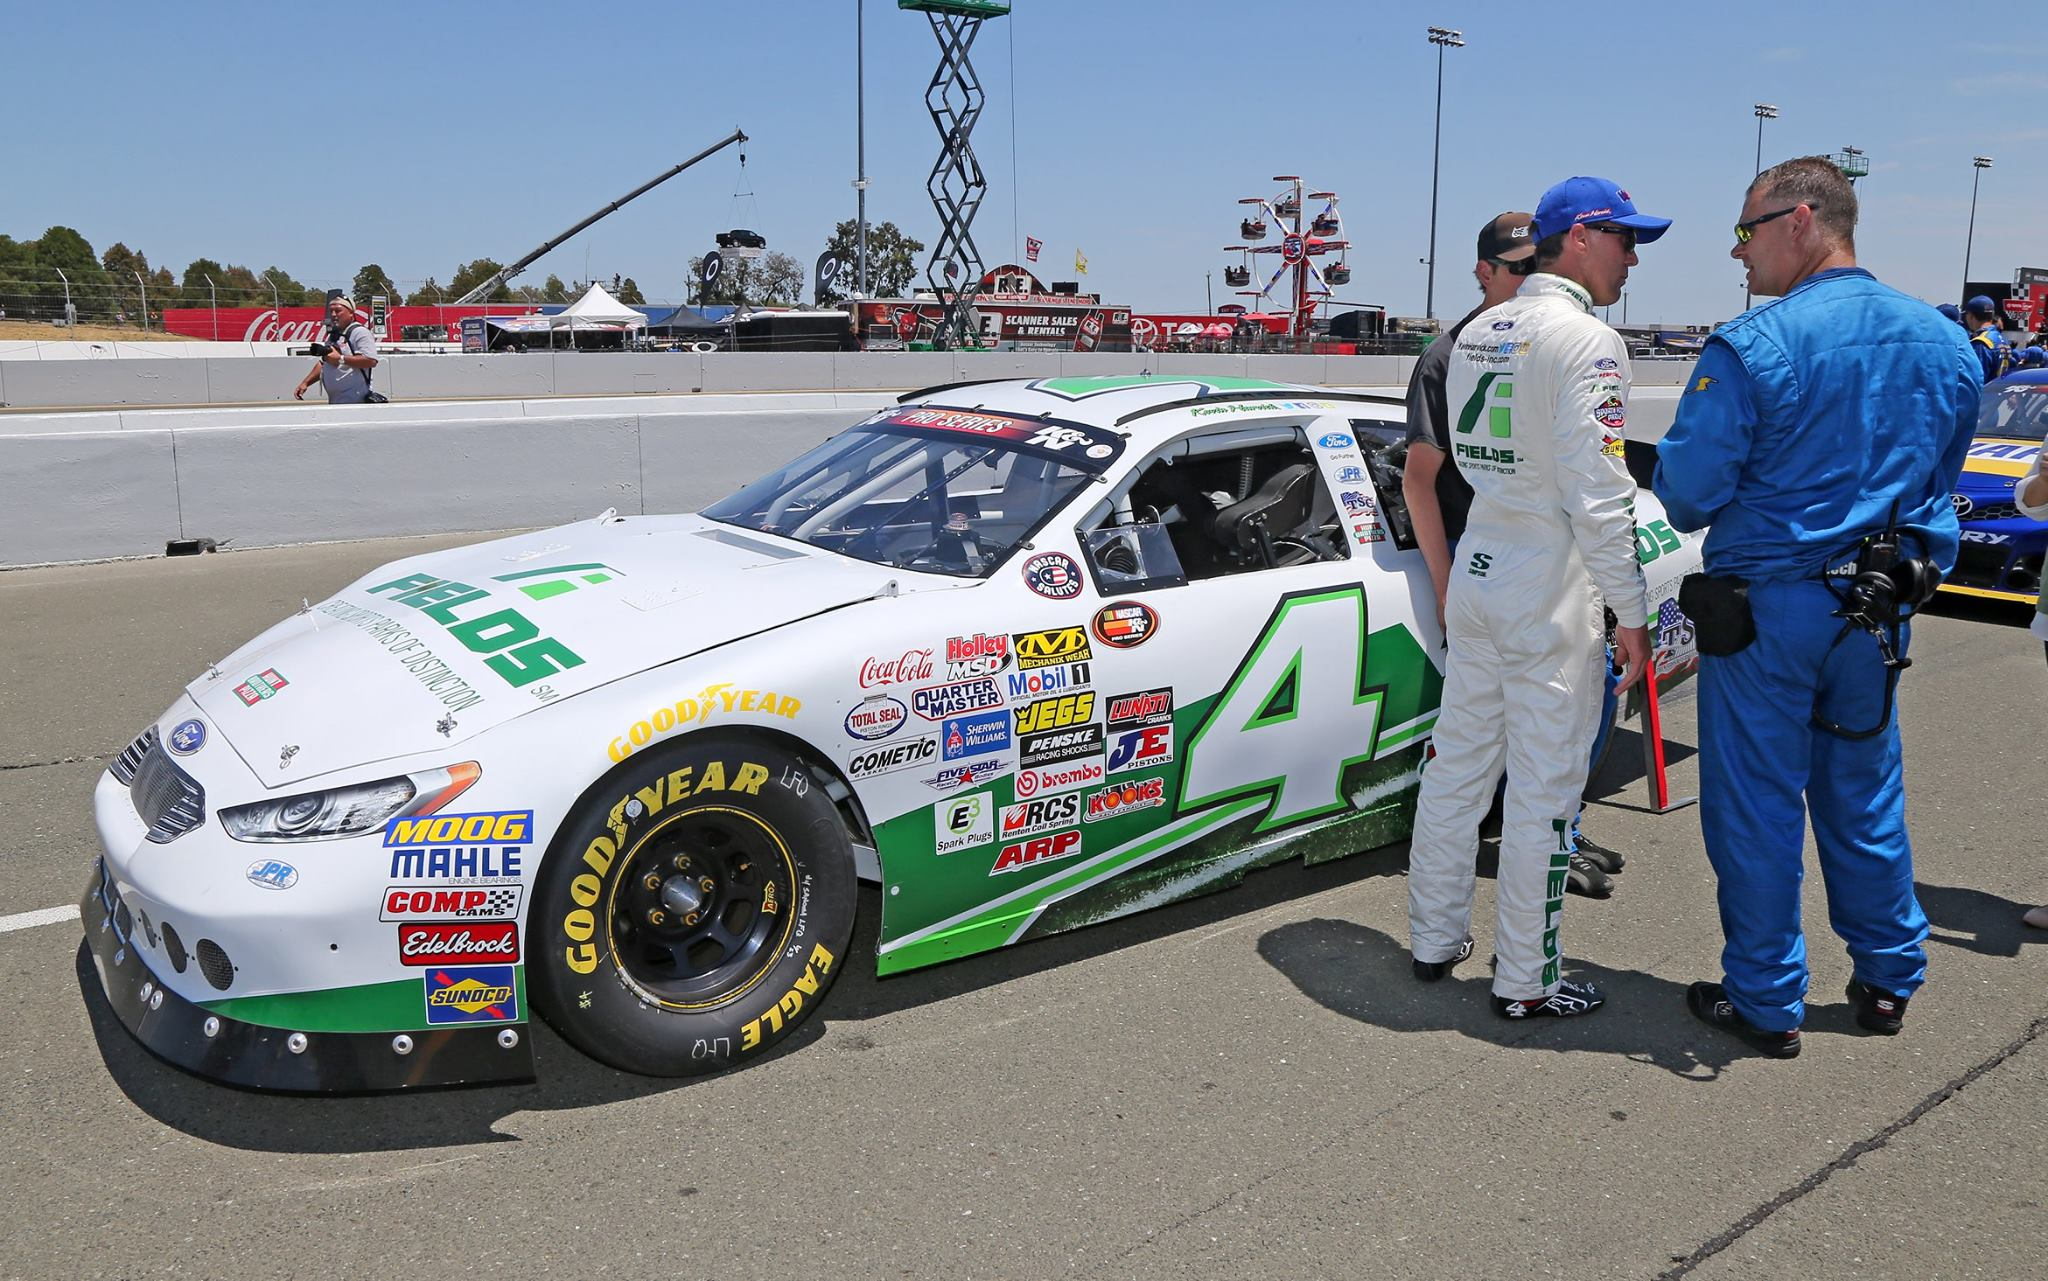 Kevin Harvick in the NASCAR K&N Pro Series event at Sonoma Raceway